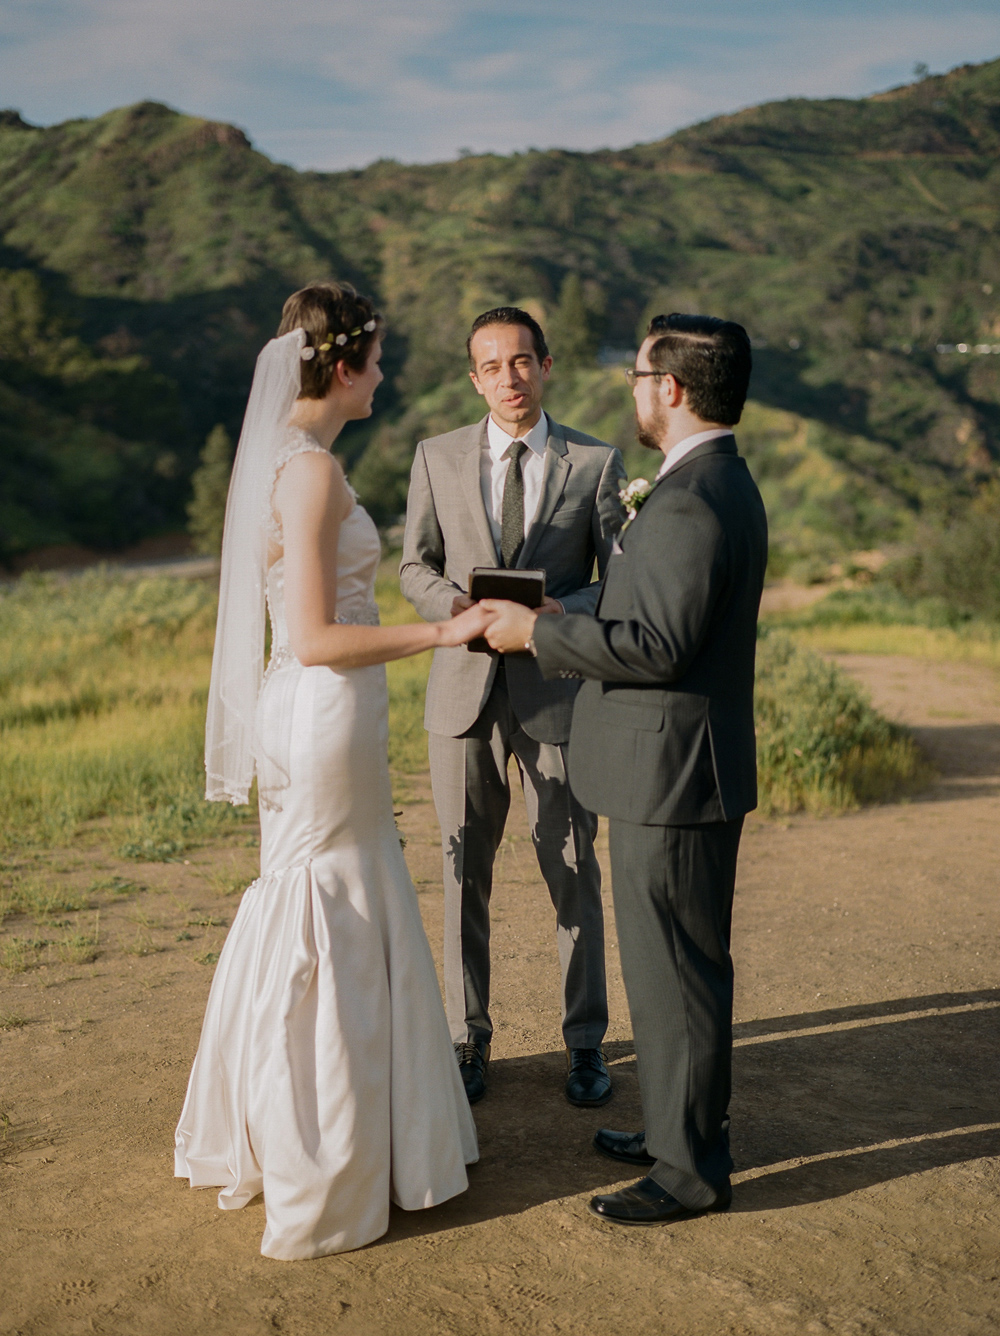 Beautiful outdoor elopement ceremony on film at Griffith Park in Los Angeles.